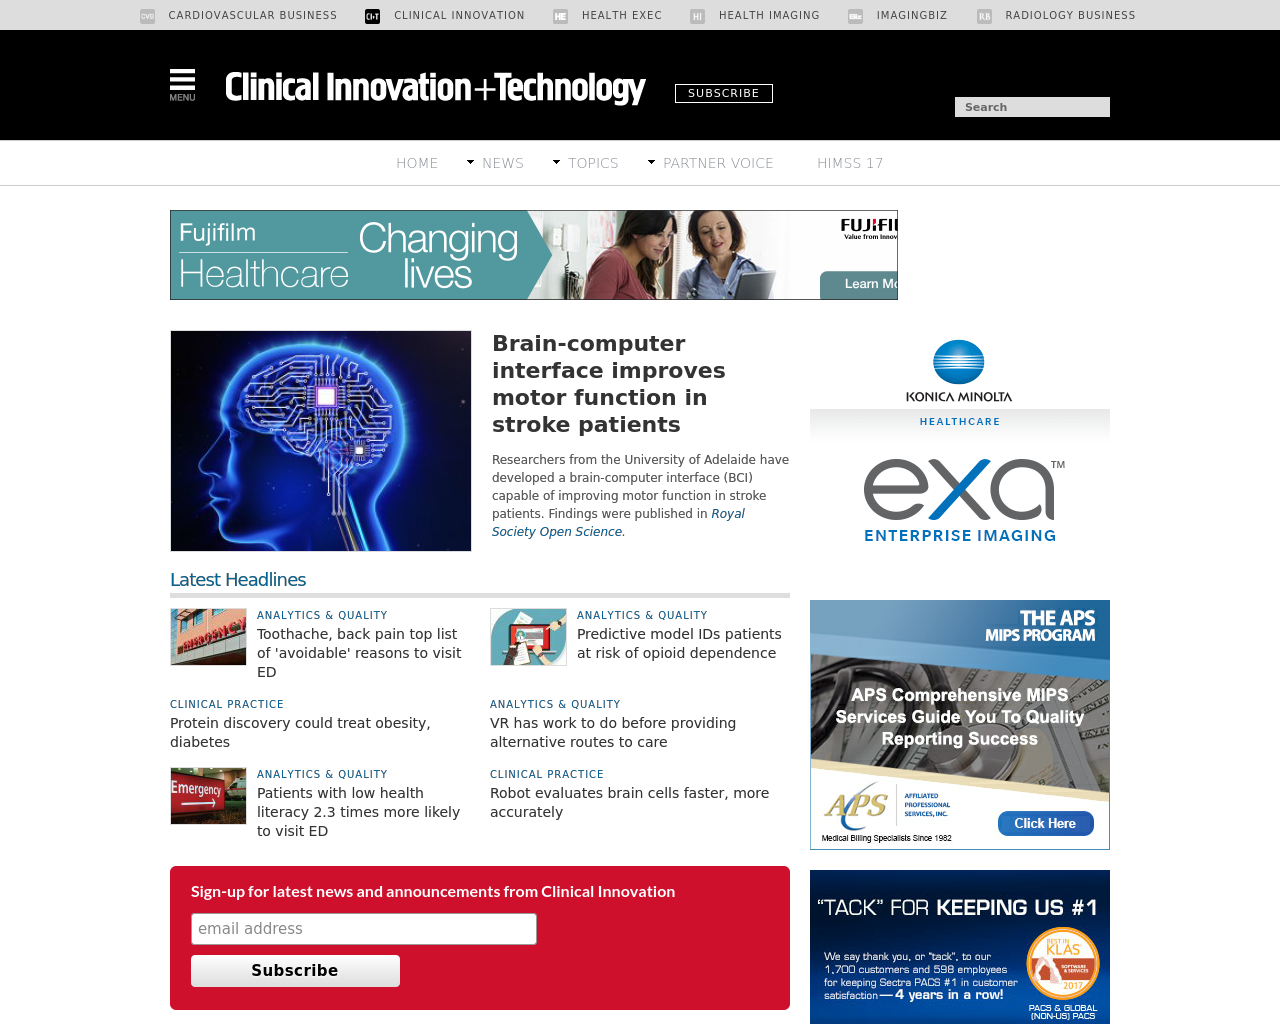 Clinical-innovation-Technology-Advertising-Reviews-Pricing